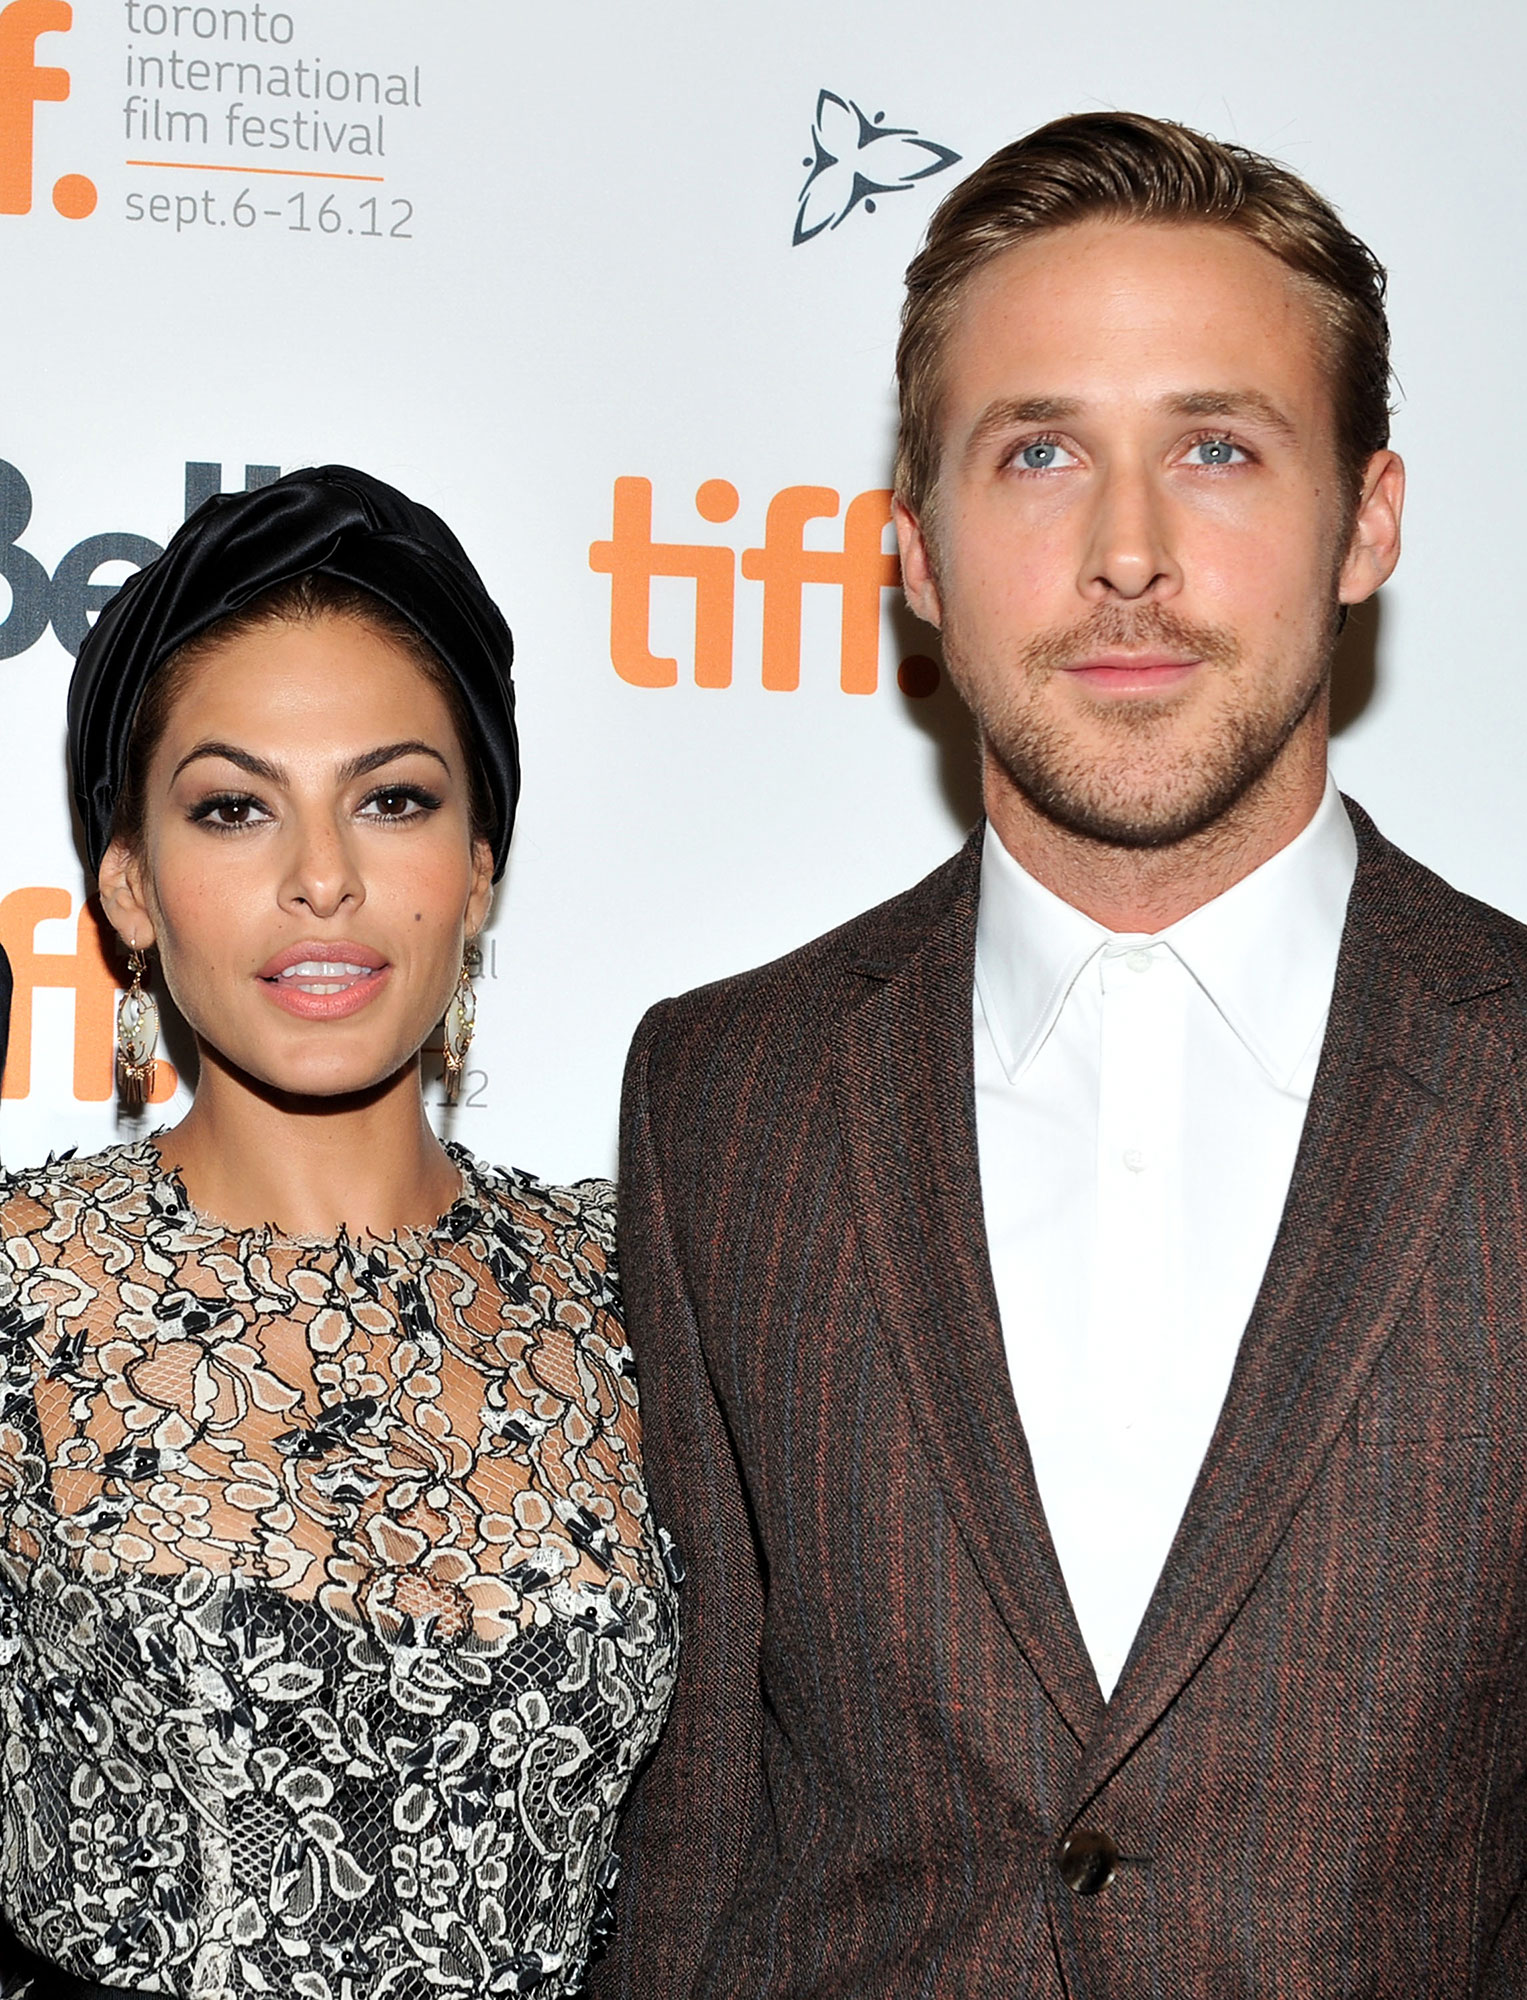 Eva Mendes and Ryan Gosling - The Place Beyond the Pines costars debuted another joint project , daughter Esmerelda, in September 2014. Mendes nearly kept the pregnancy a secret the entire time, but Us broke the news when she was around seven months pregnant.